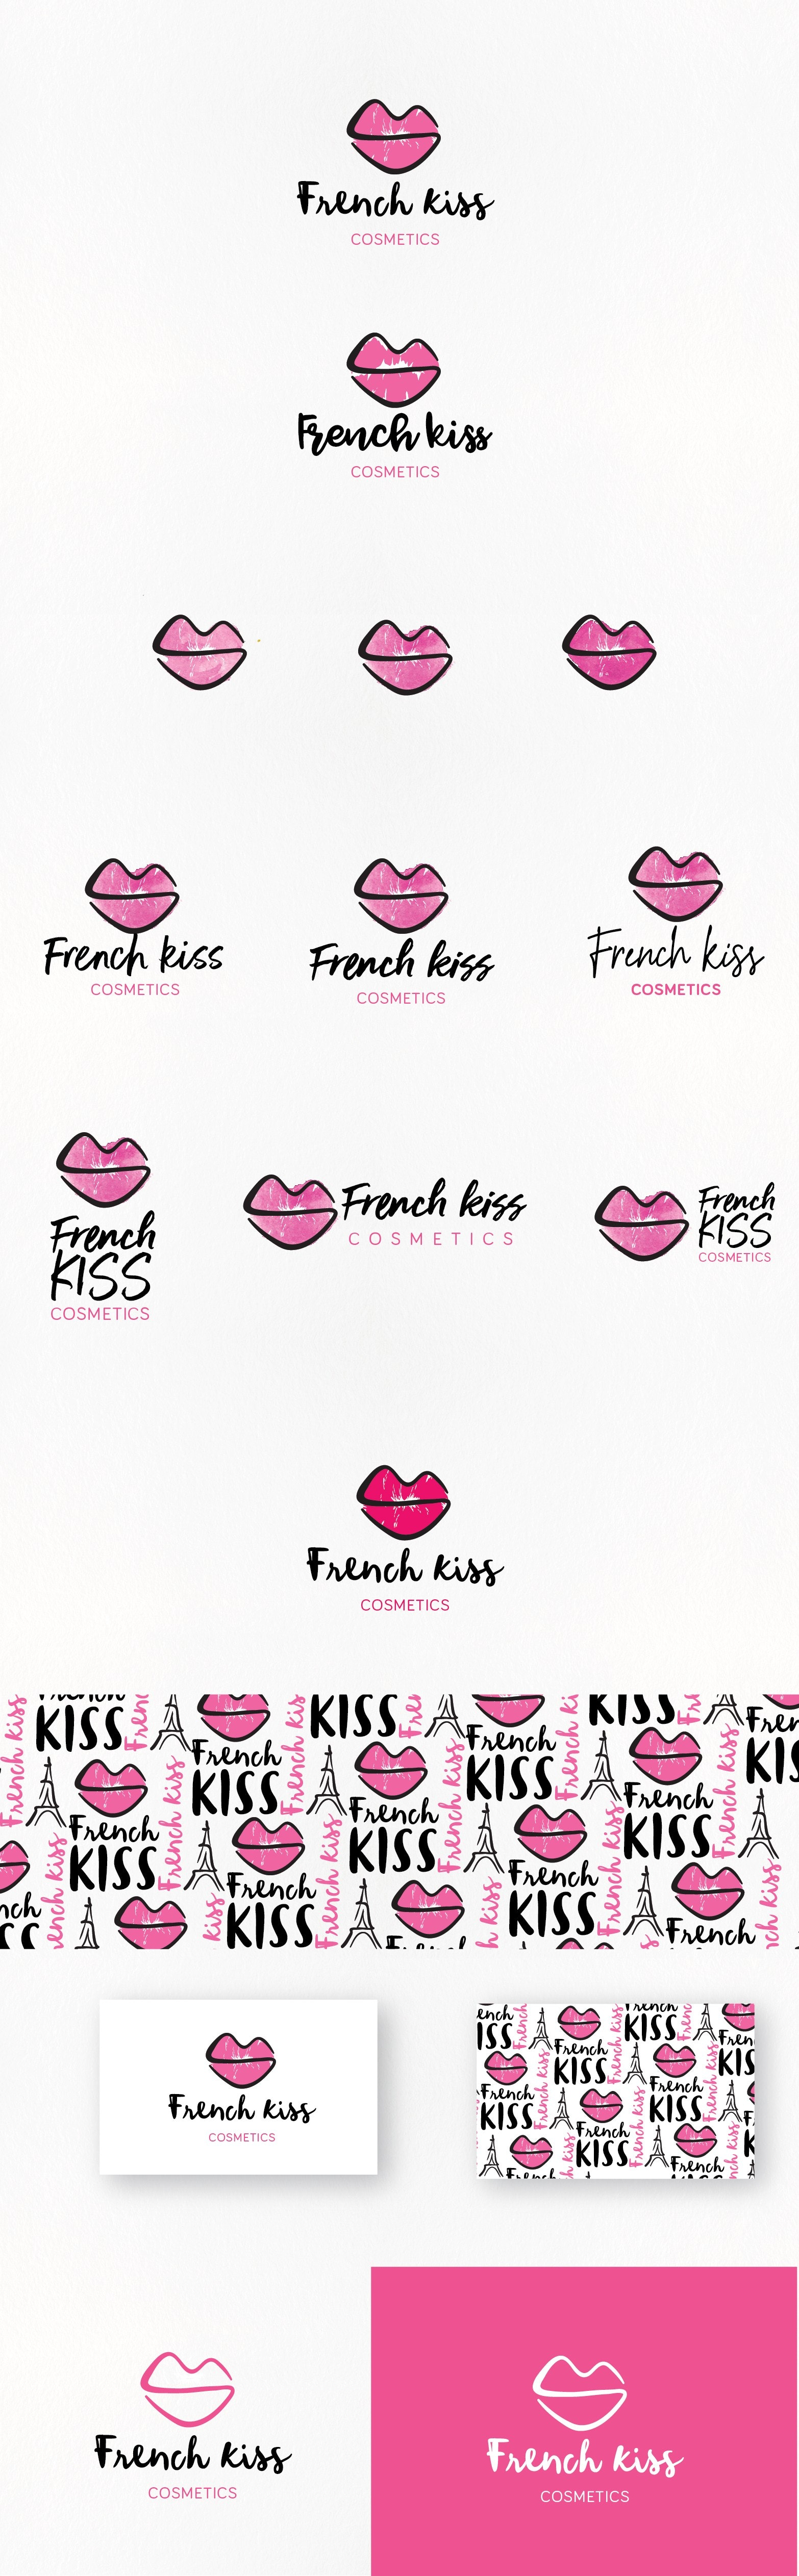 "Pink lips outlined in black with the text ""French Kiss cosmetics"""